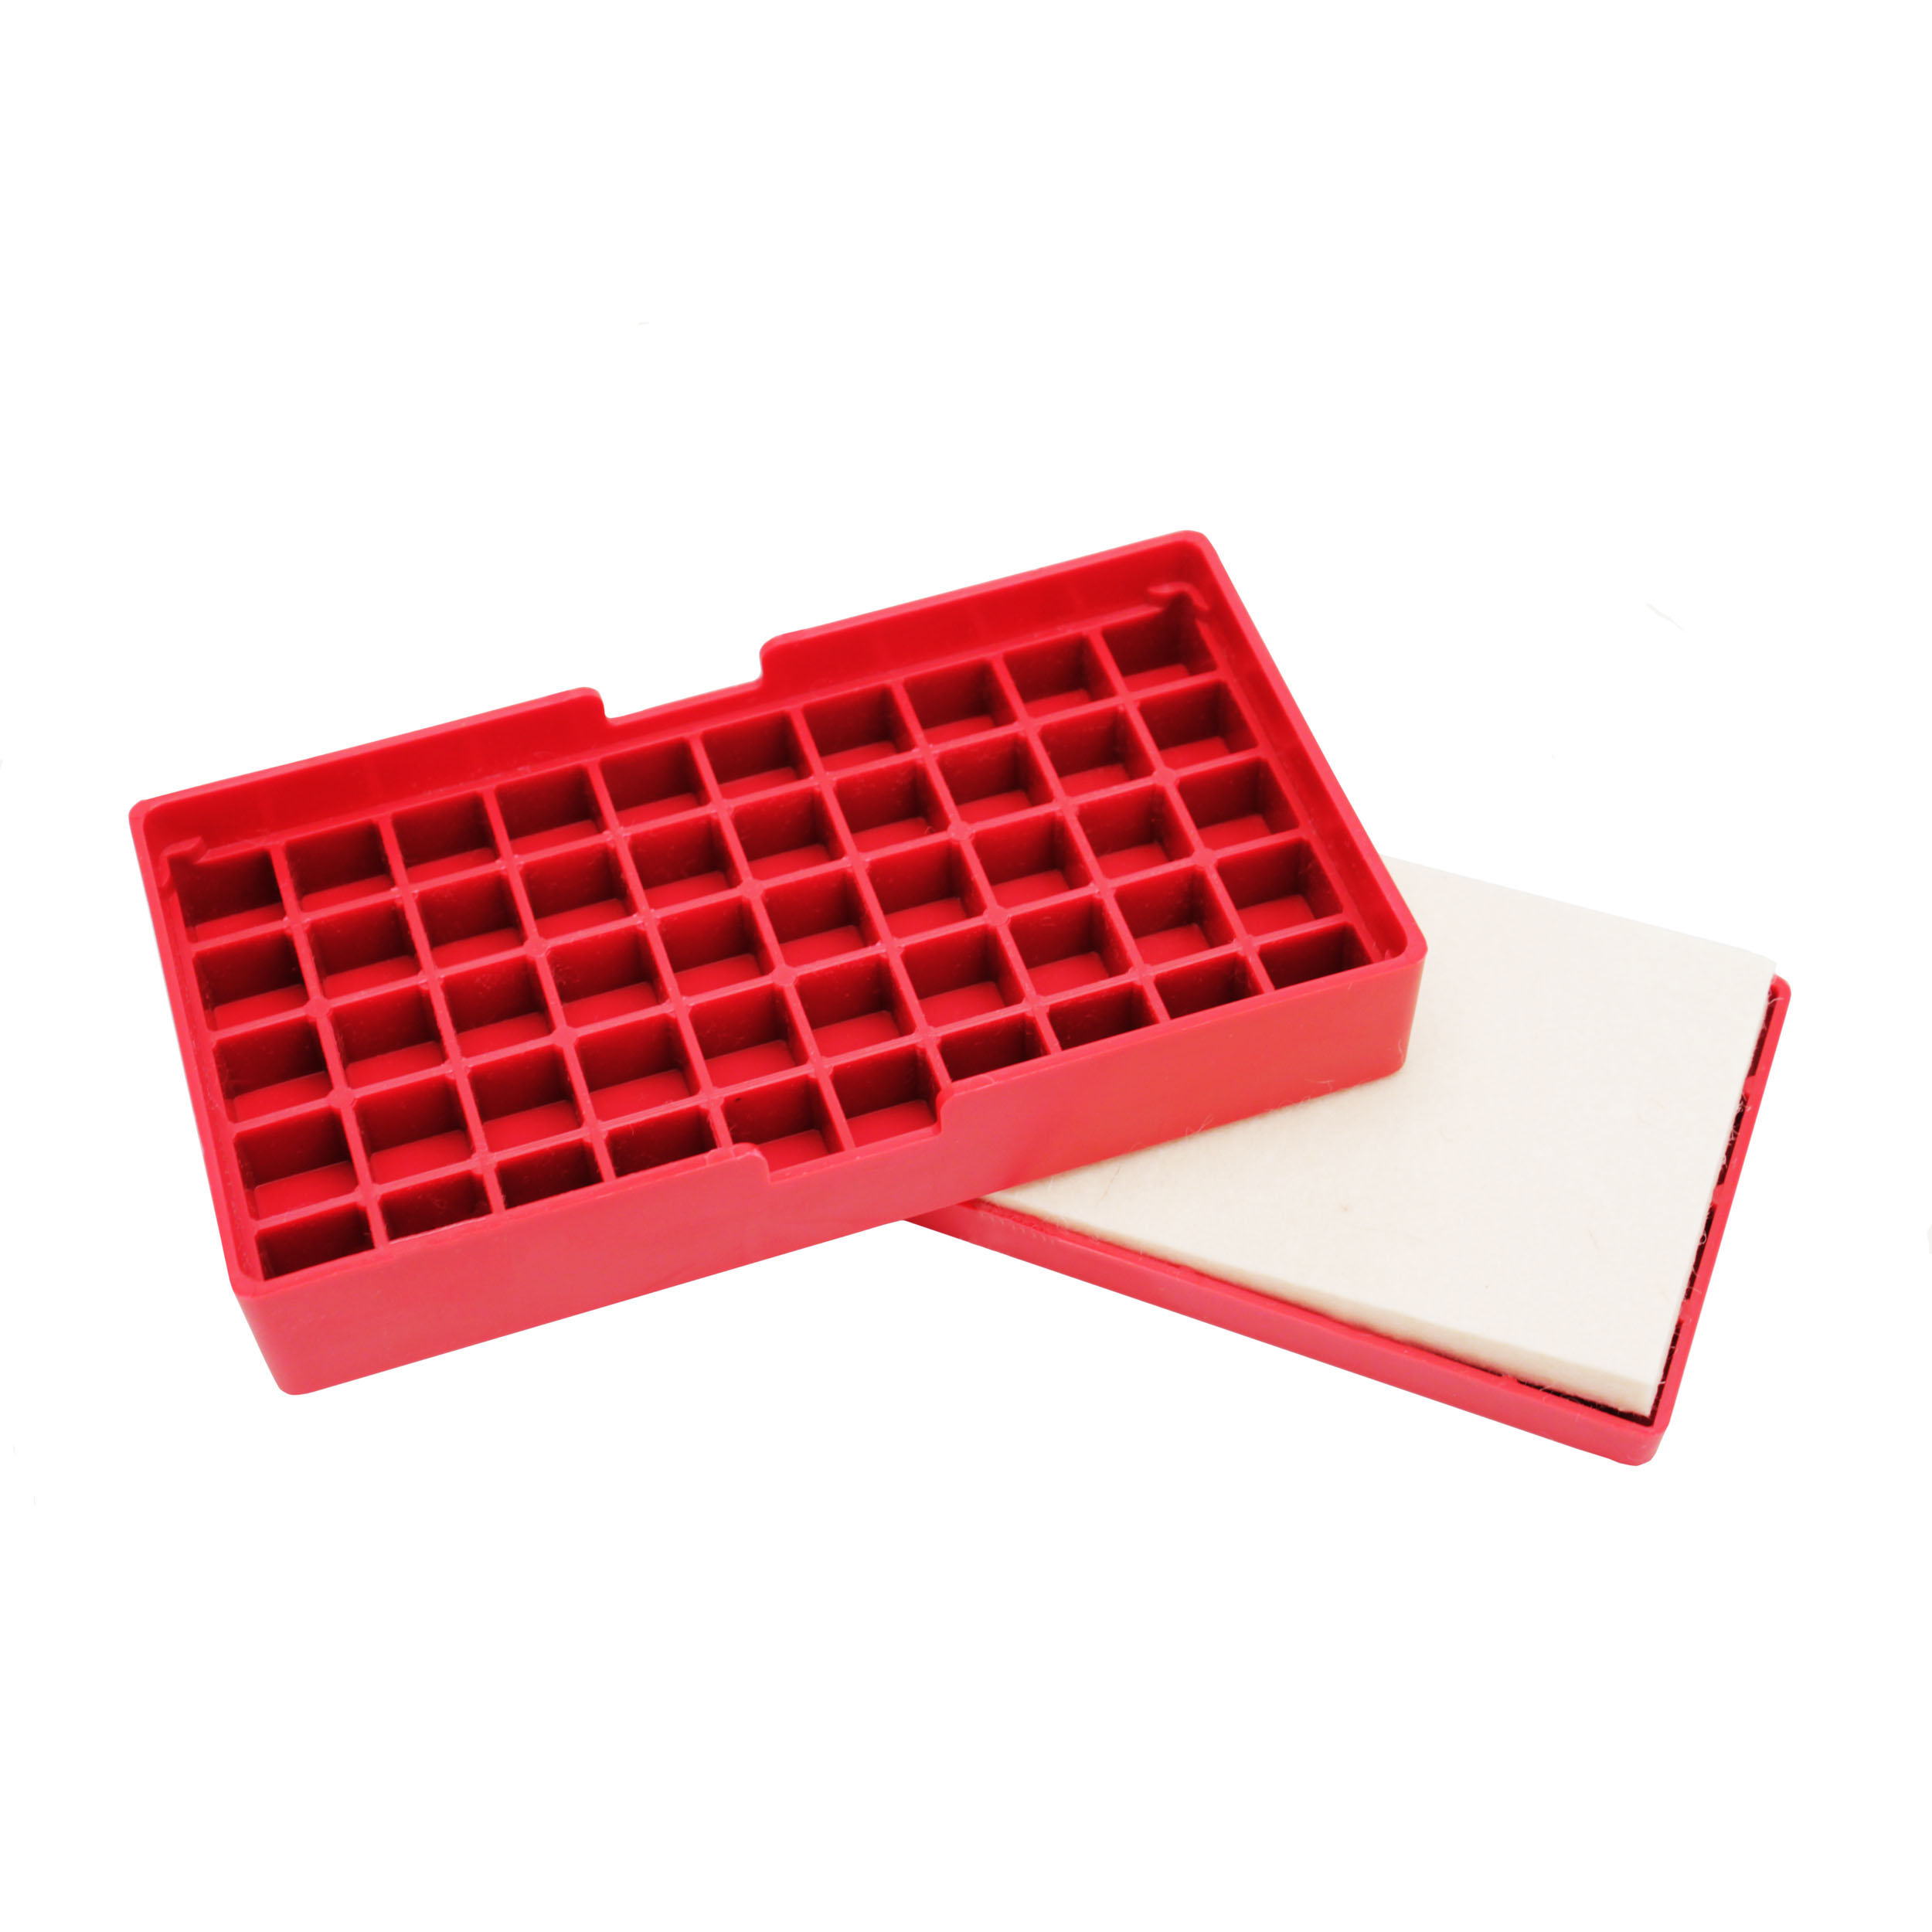 Hornady Case Lube Pad and Reloading Tray, Holds 50 Cases, Red